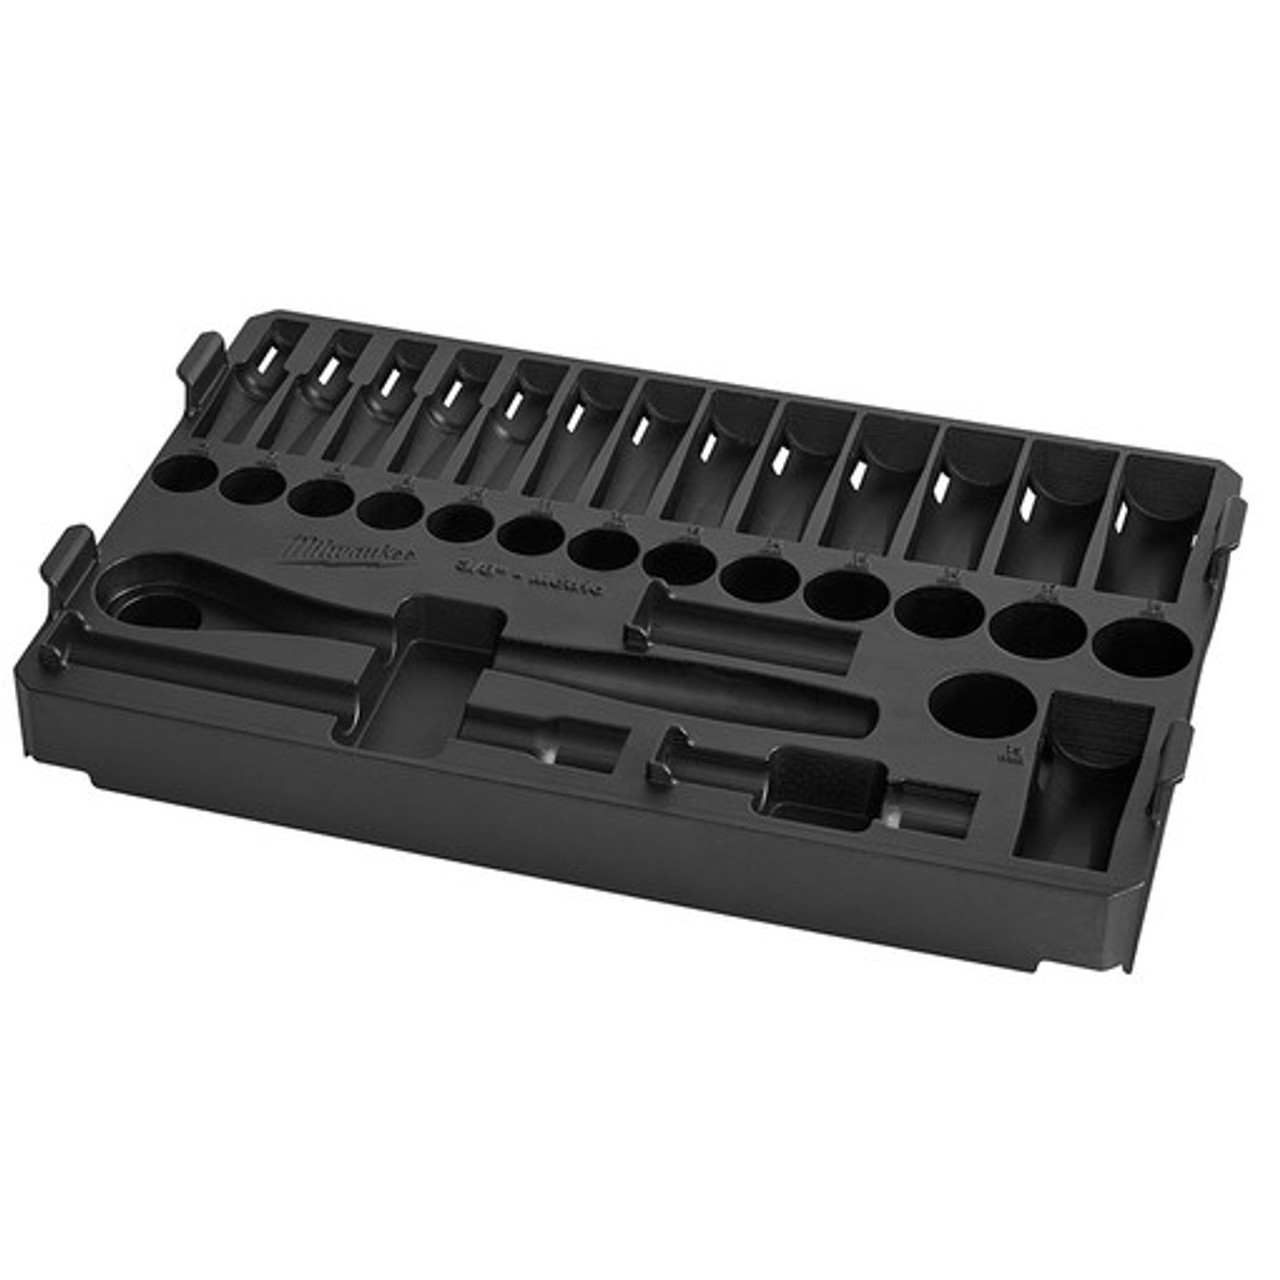 Milwaukee 48-22-9482T 32pc 3/8 in. Drive Ratchet and Socket Tray - Metric